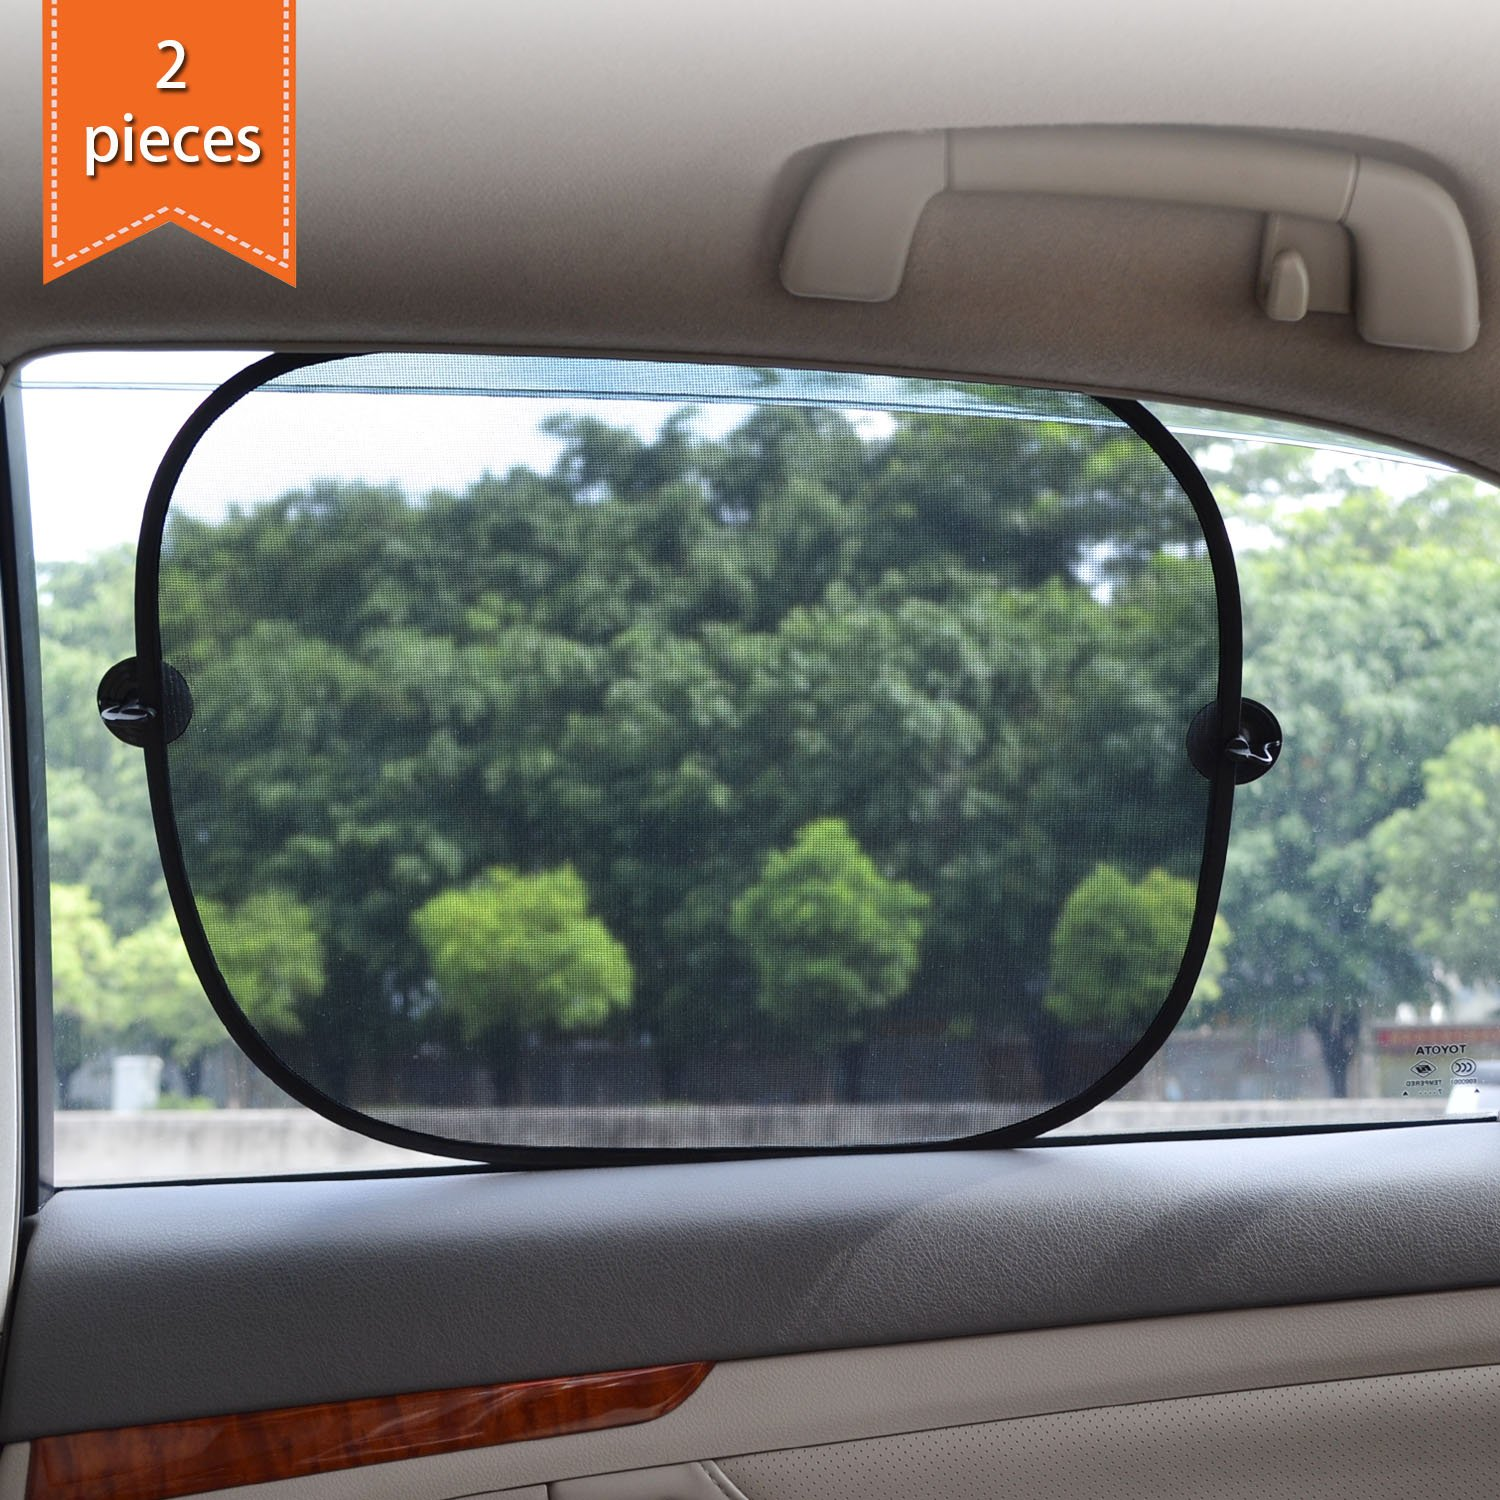 Protect Your Children From Sun and UV Rays 3 Pieces WP-REAR/_SIDEMESH WANPOOL Sun Shade Shield Sunlight Blocker for Car Side and Rear Windows